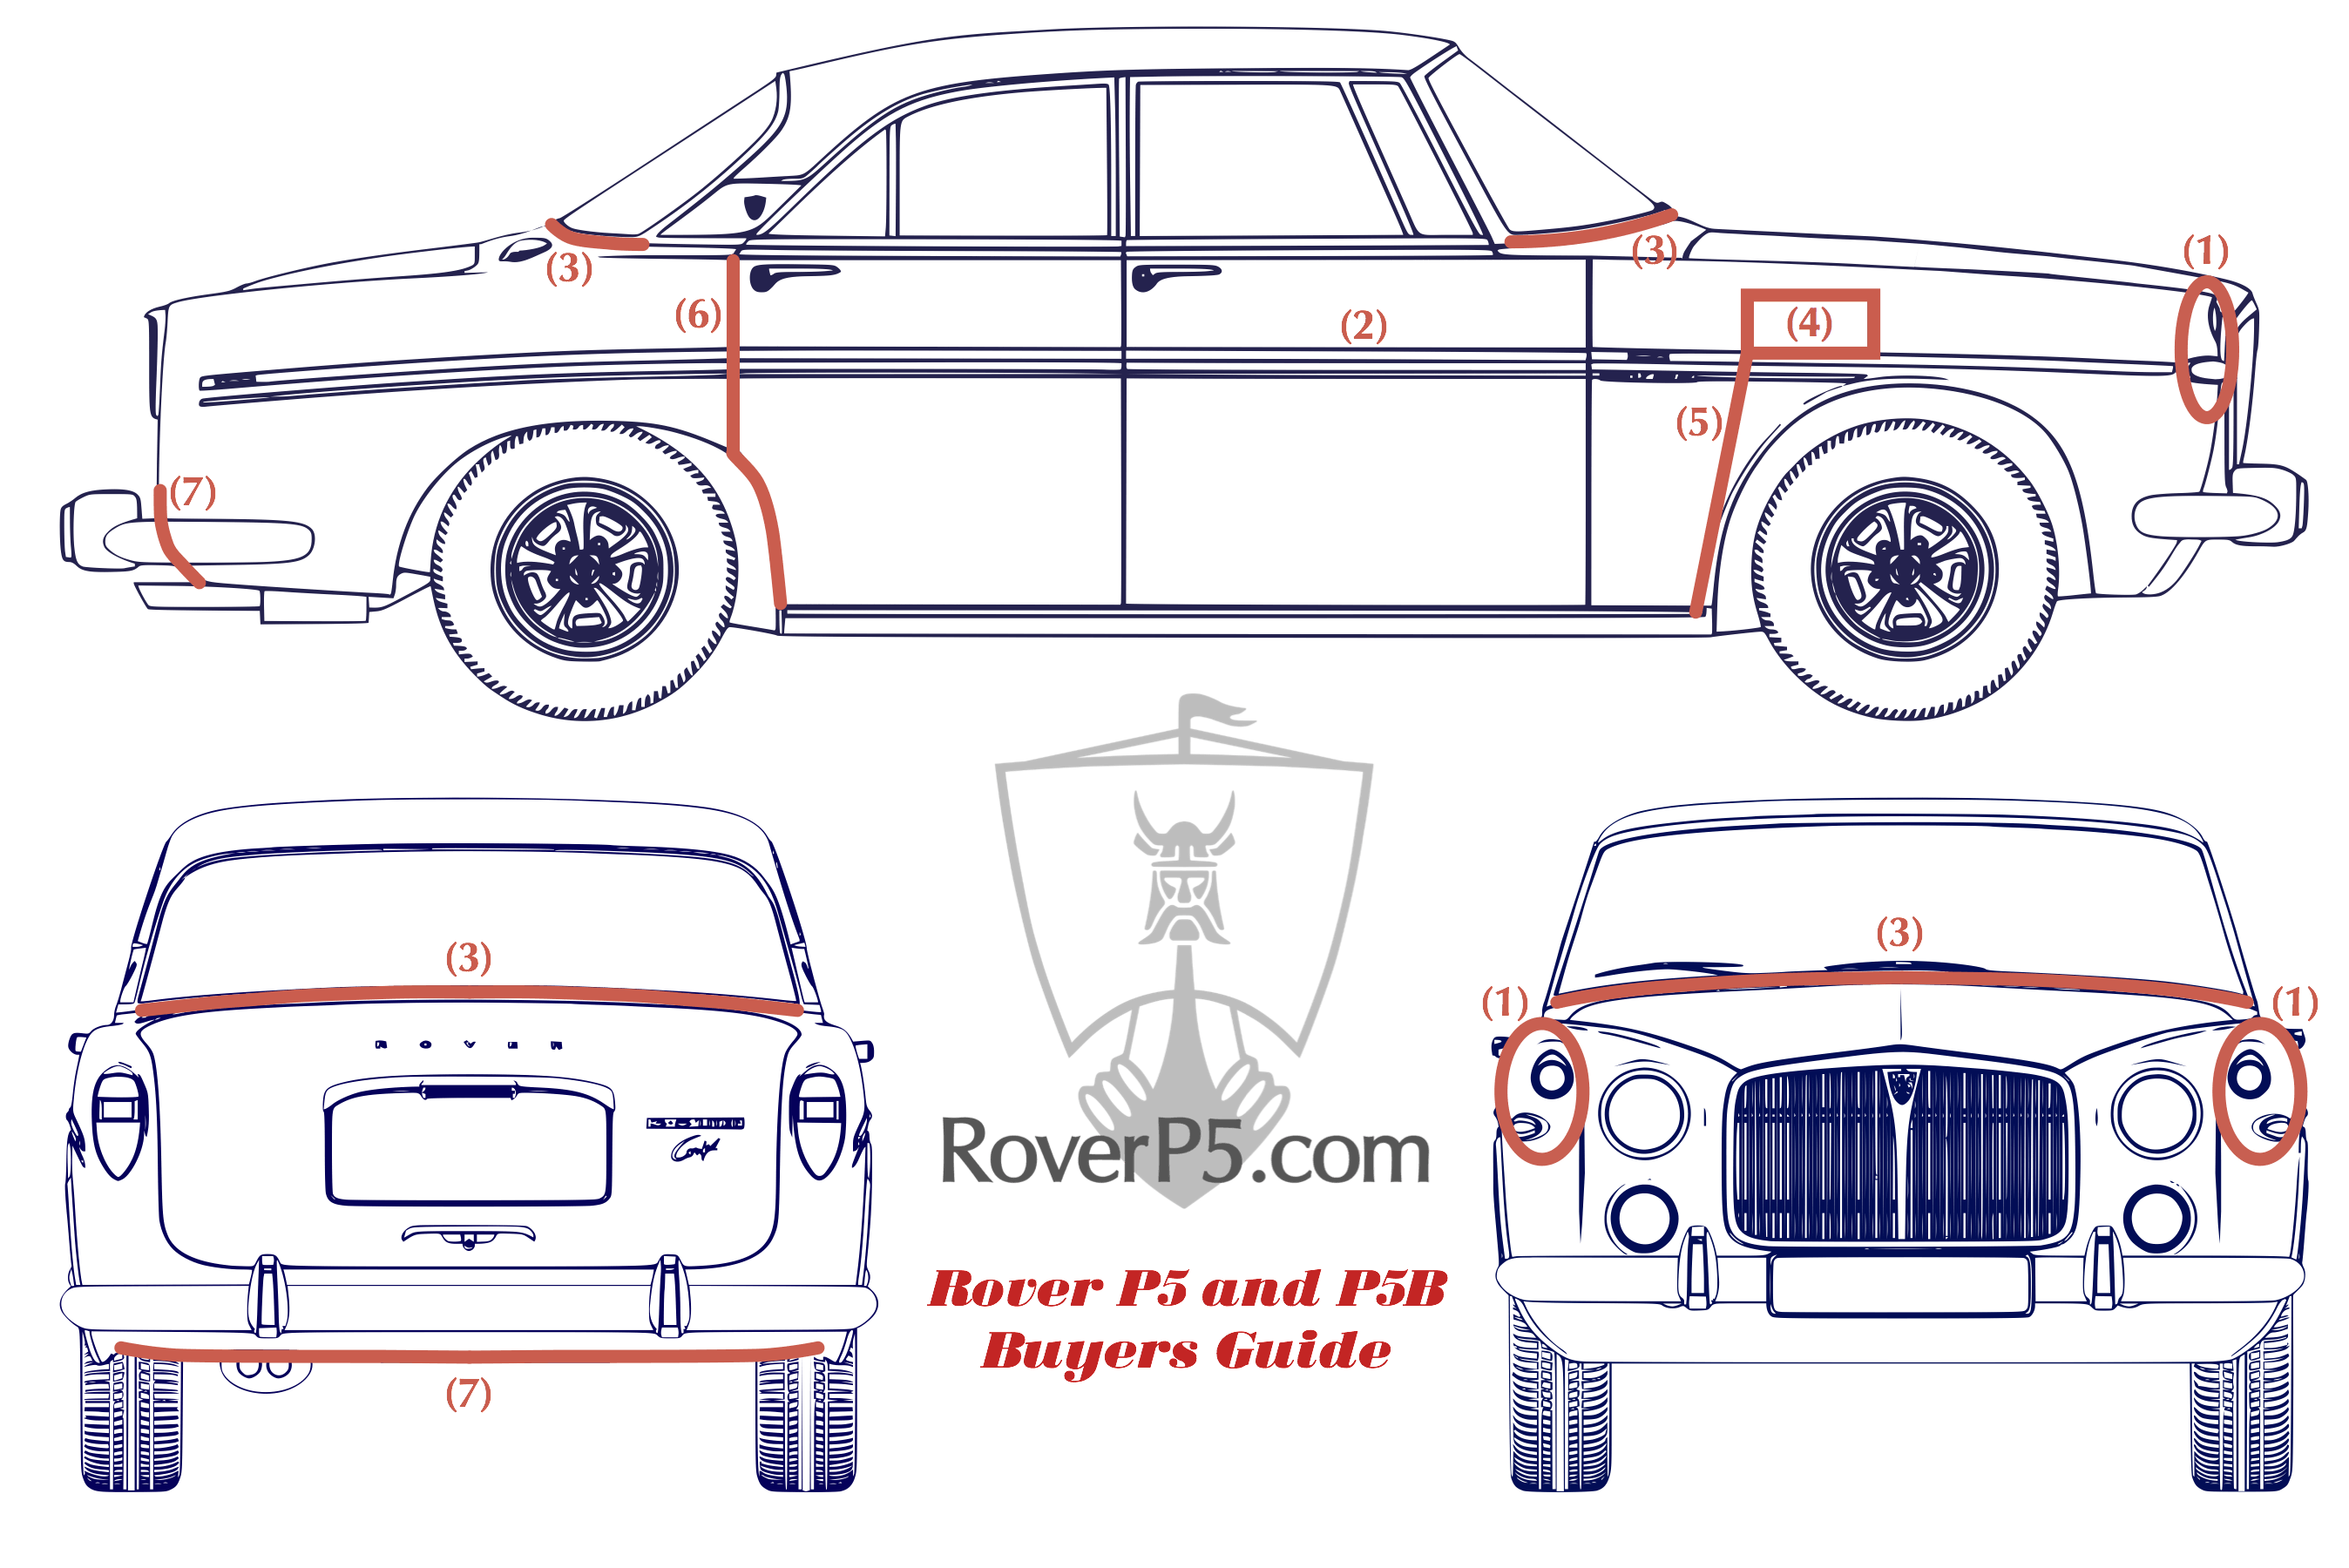 Rover P5b Wiring Diagram Schematic 820 P5 3 Litre And 35 Buyers Guiderhroverp5 At Tisza